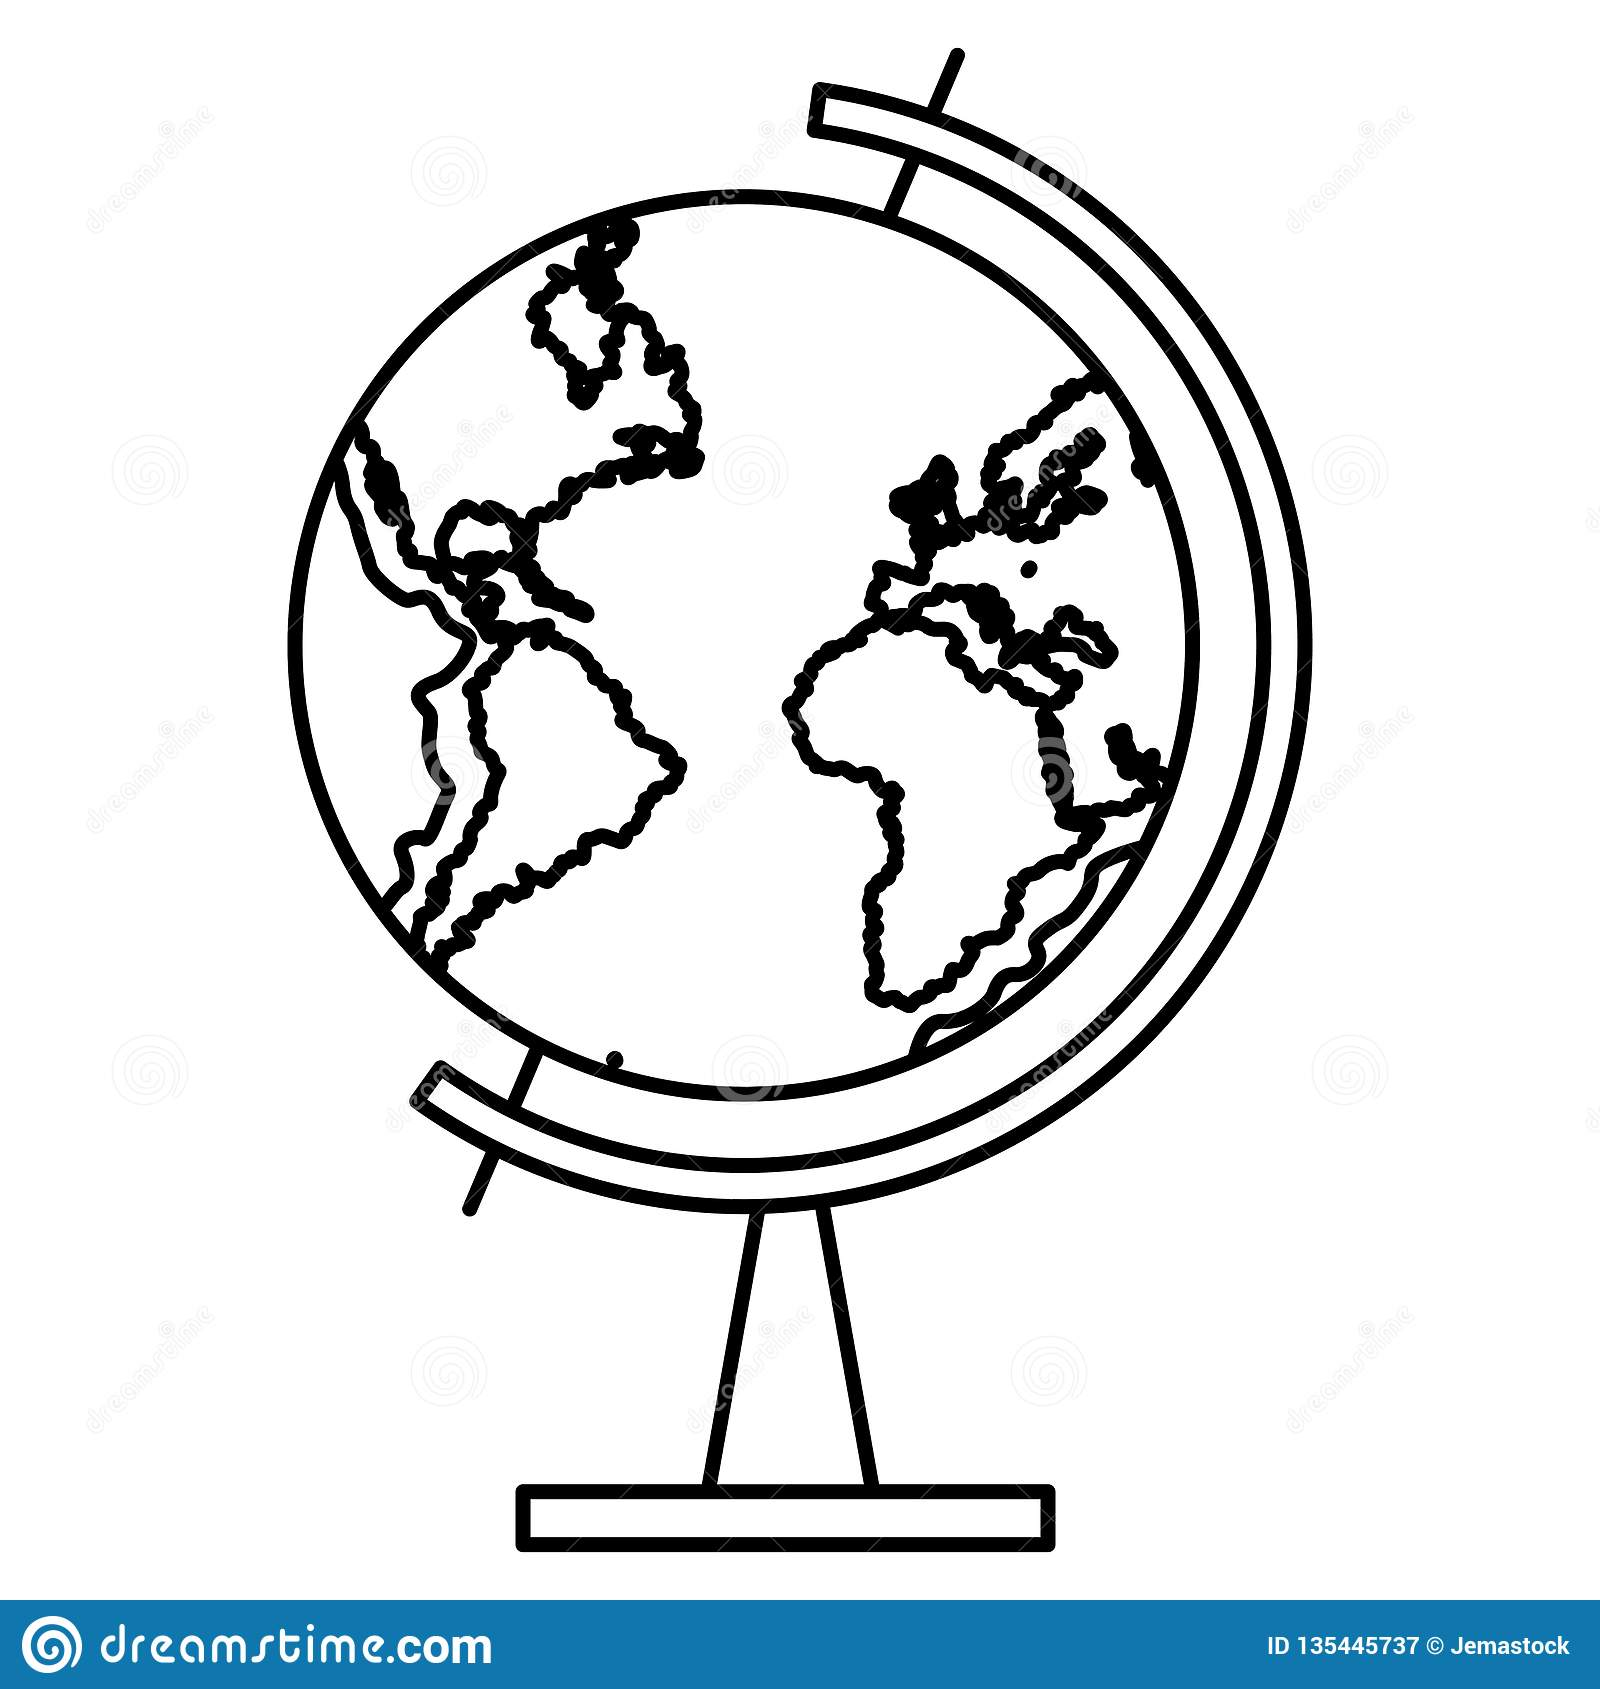 world map globe in black and white stock vector illustration of territory cartography 135445737 https www dreamstime com world map globe black white vector illustration graphic design image135445737